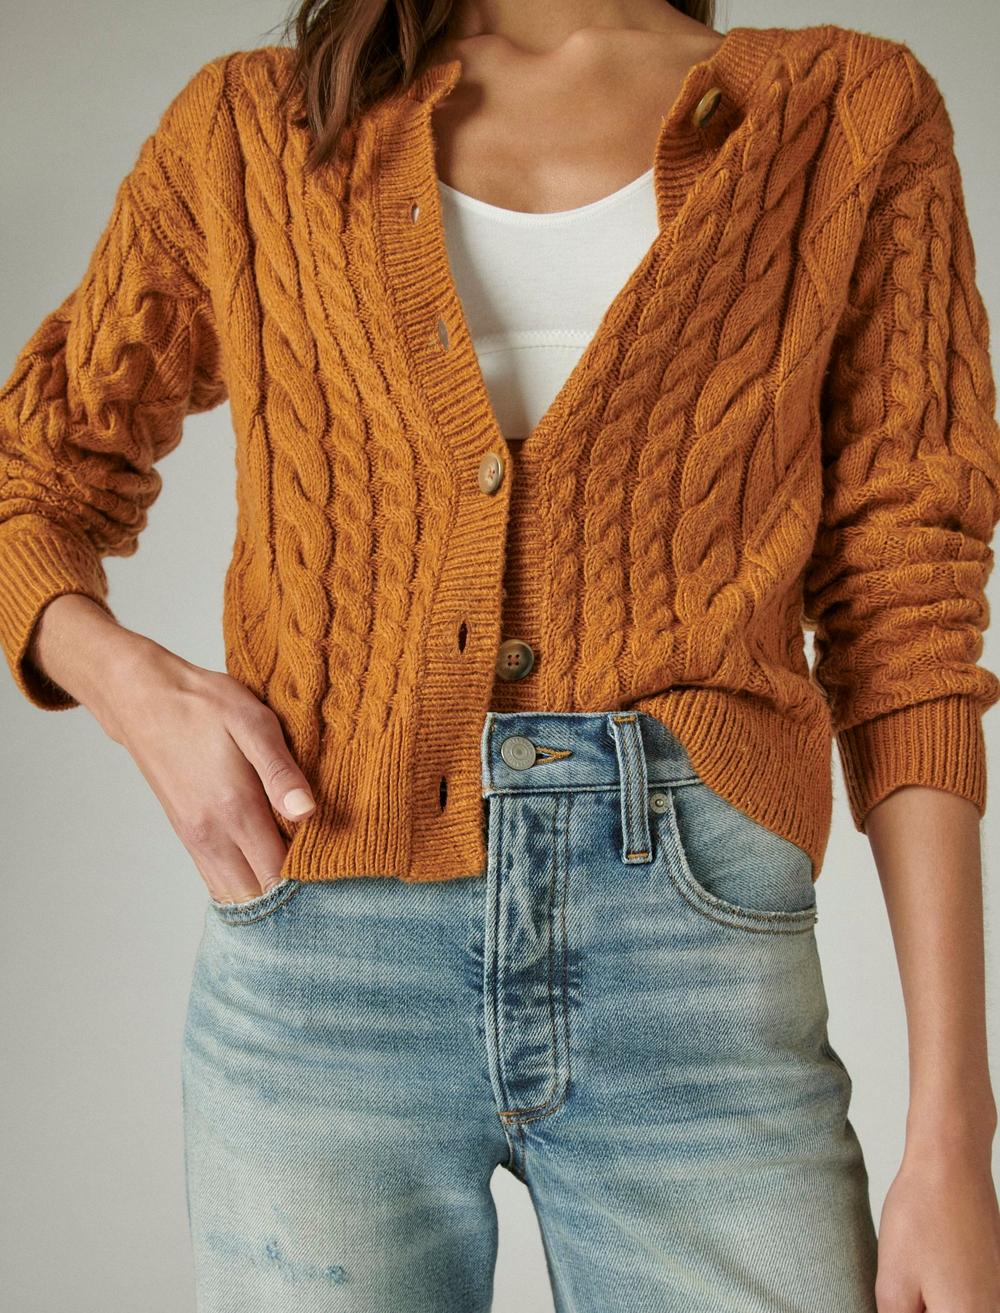 CABLE CARDIGAN TOP, image 5